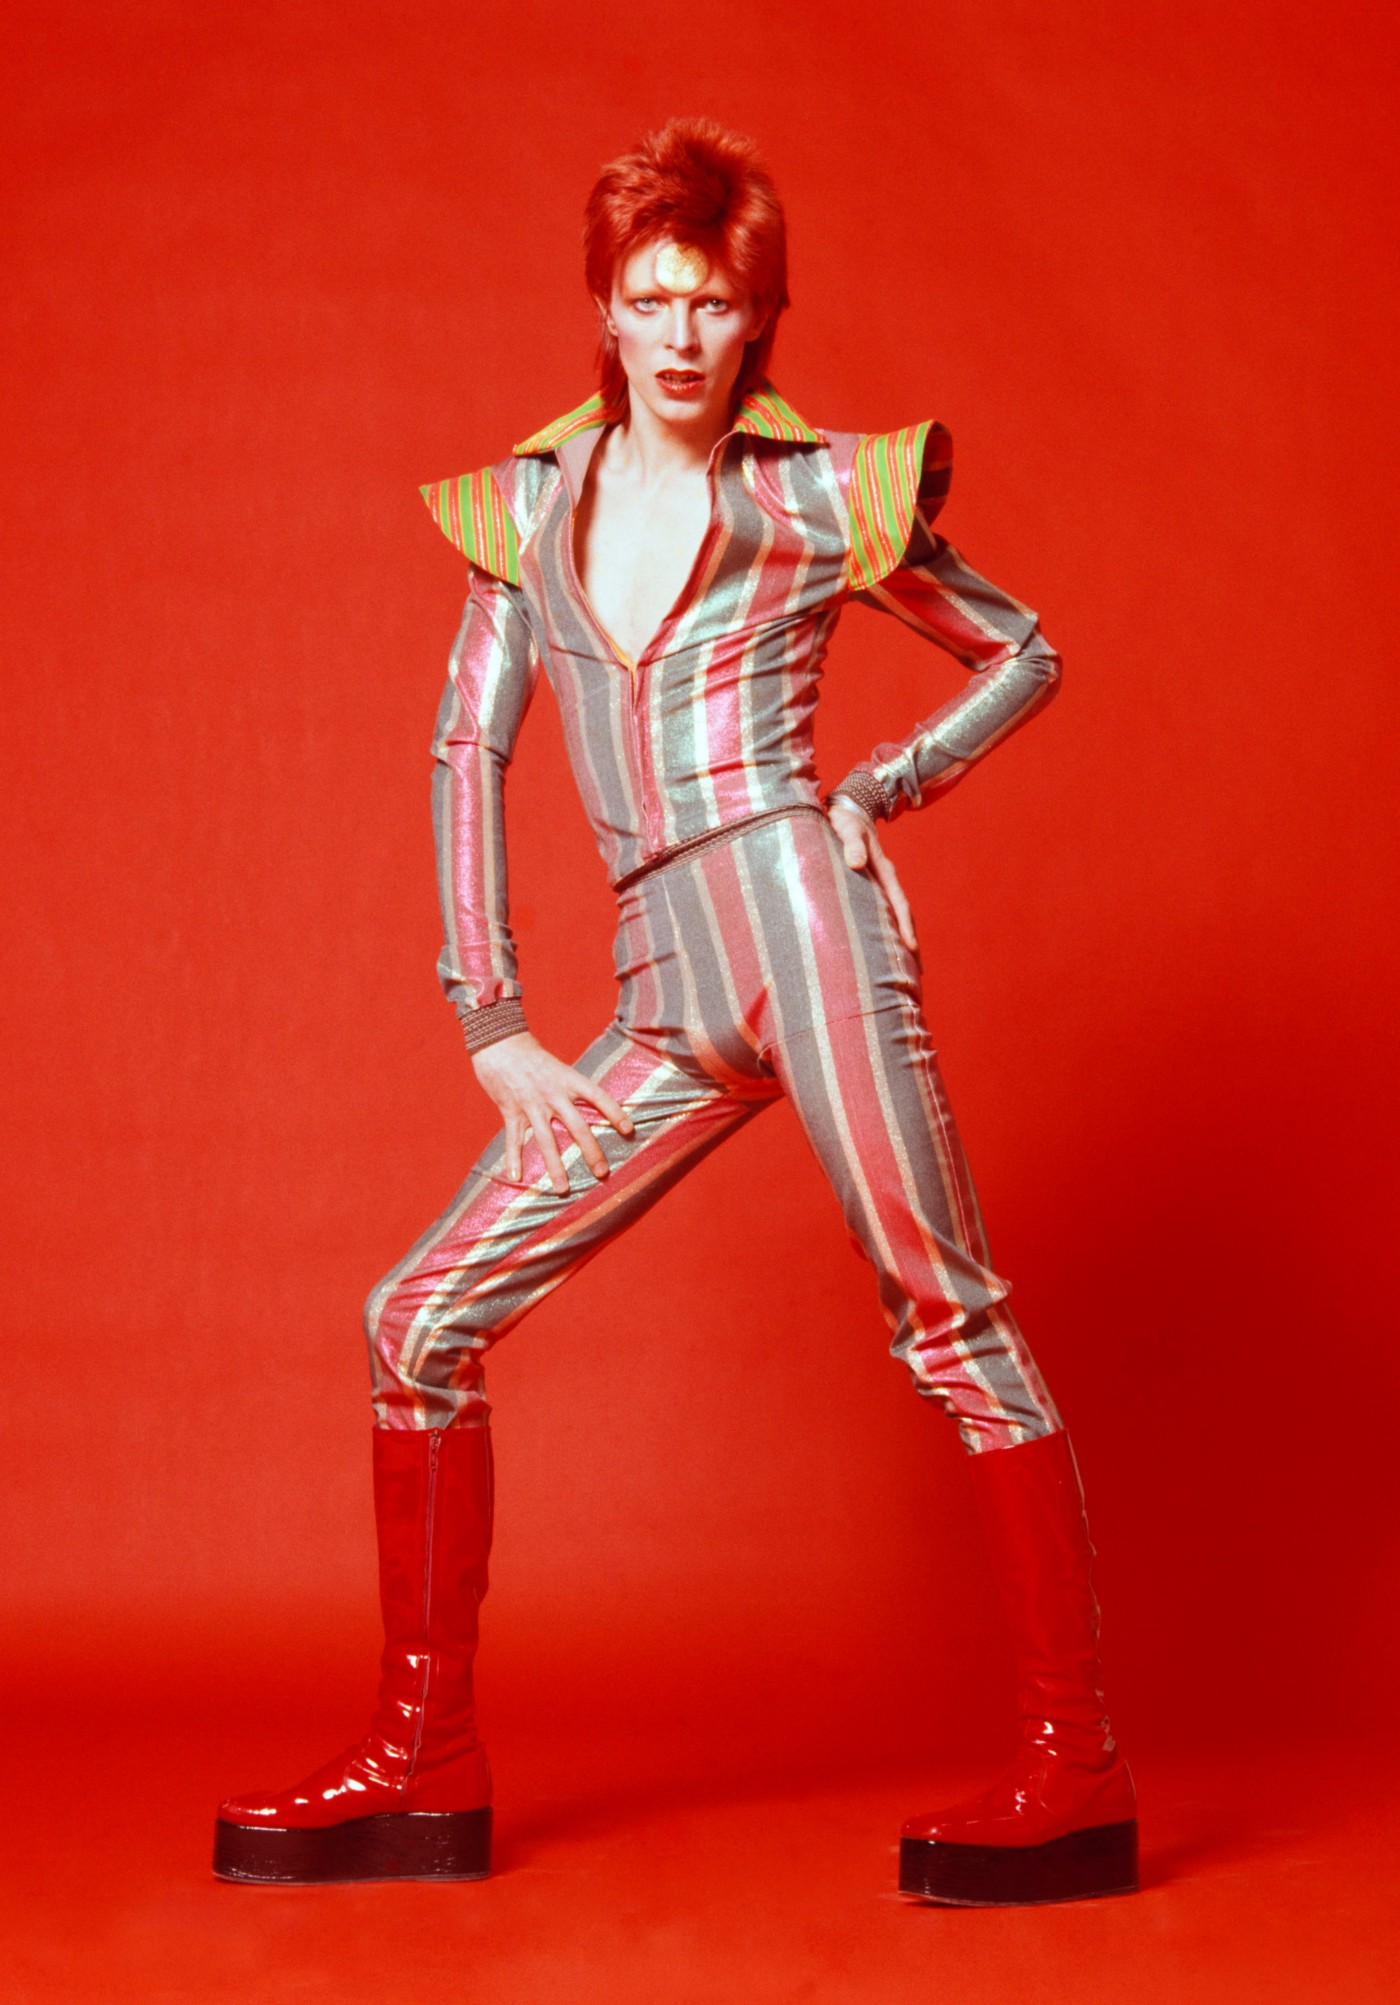 David Bowie wearing a striped jumpsuit and red platform boots against a red background.